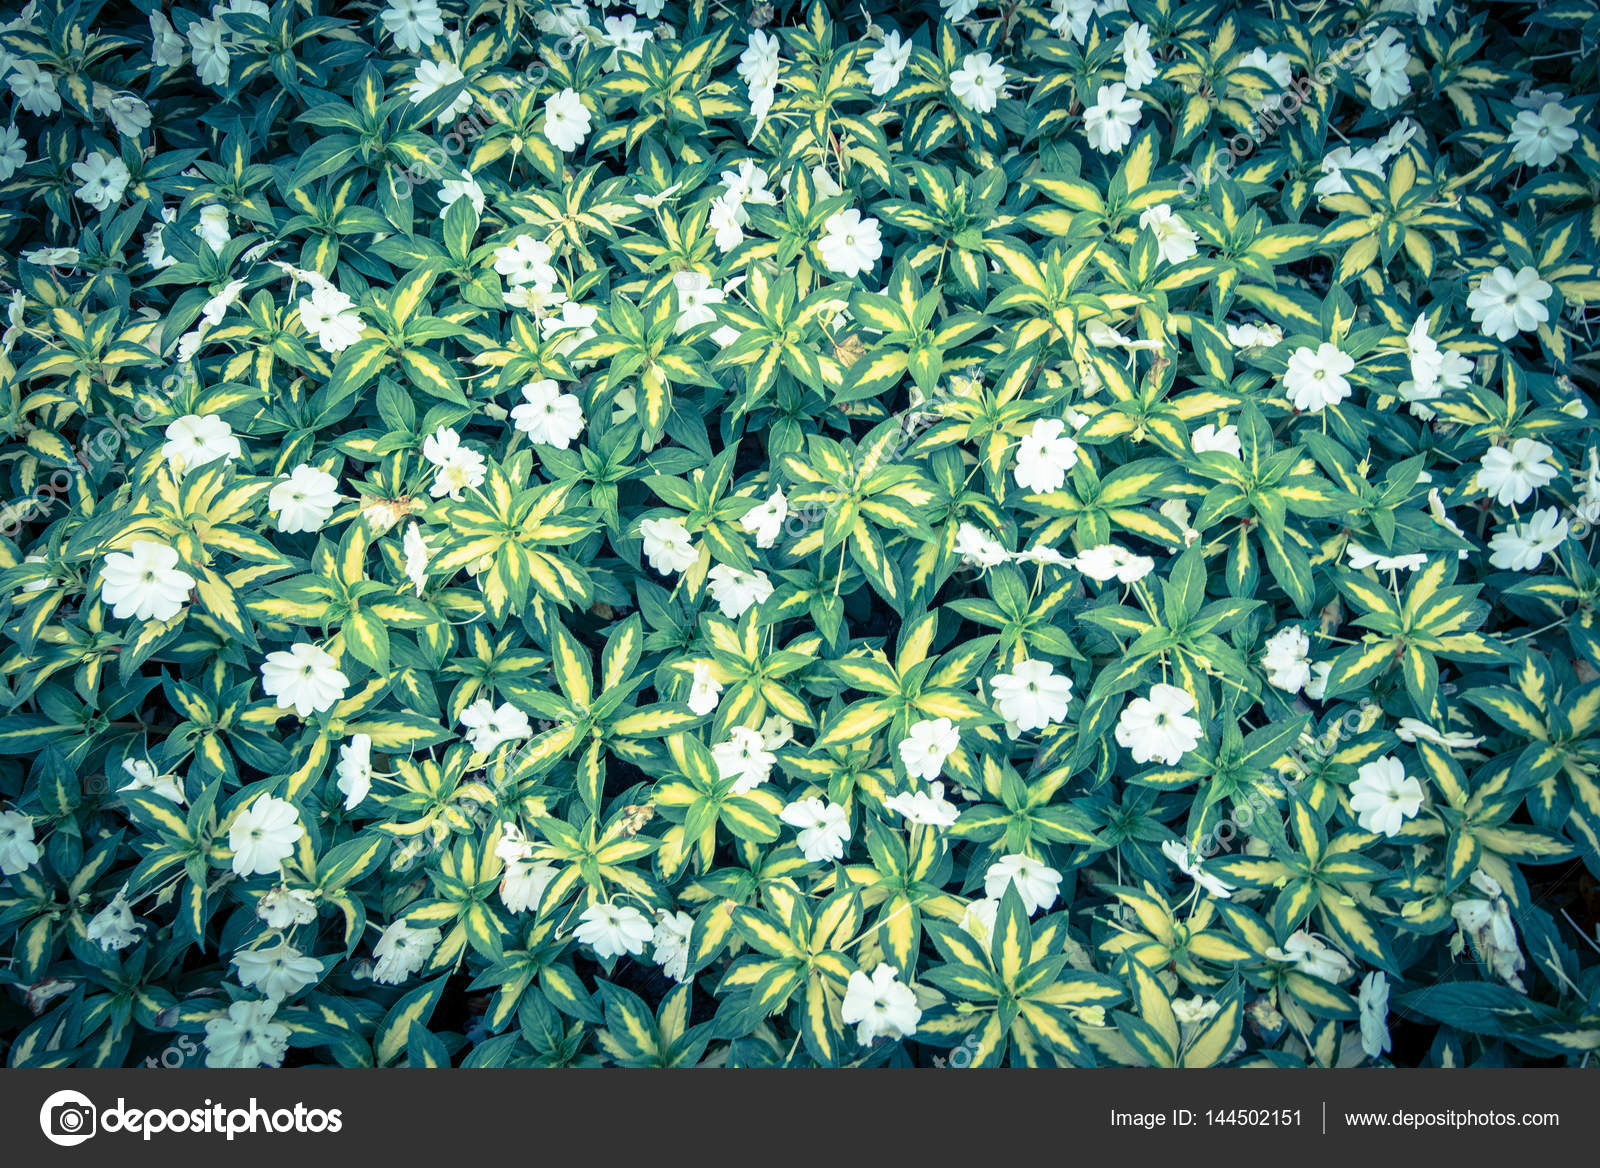 Top View Of Green Grass With Small White Flowers Background Stock